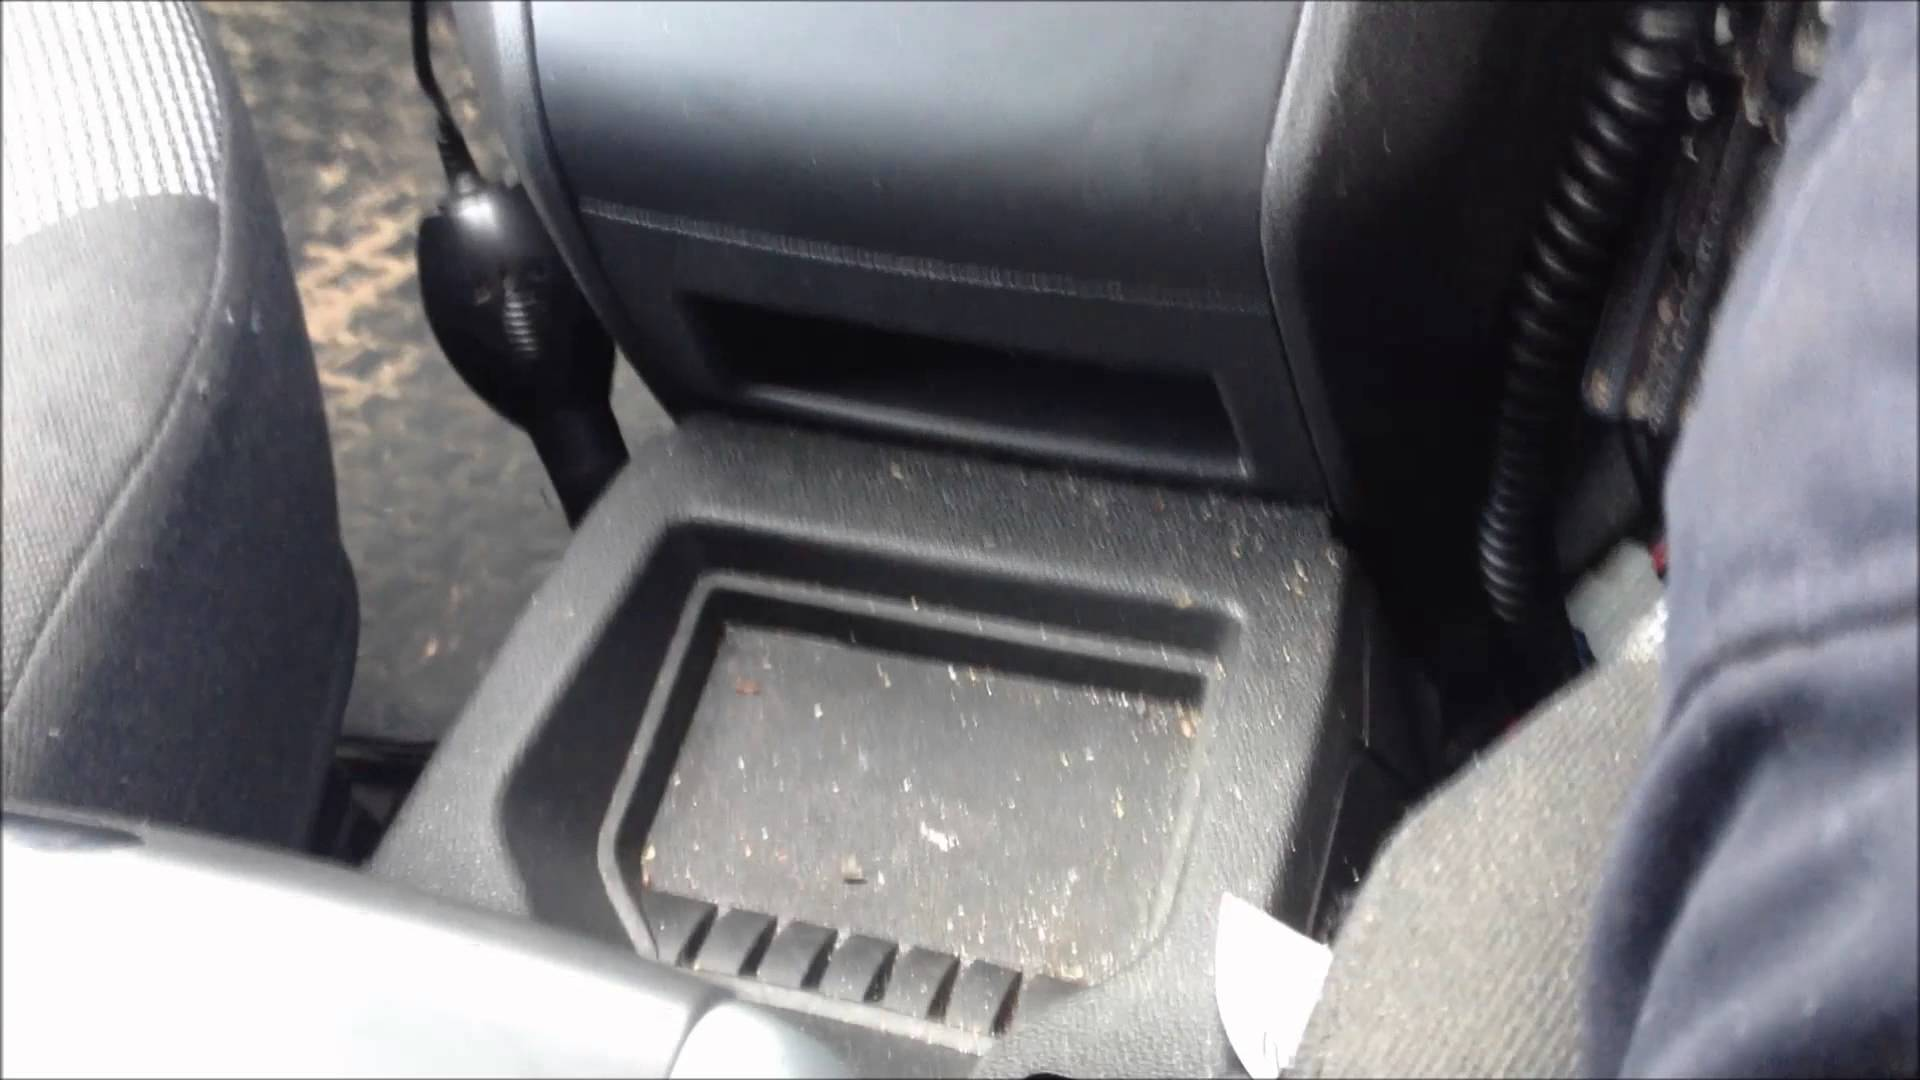 holden zafira 2004 wallpaper